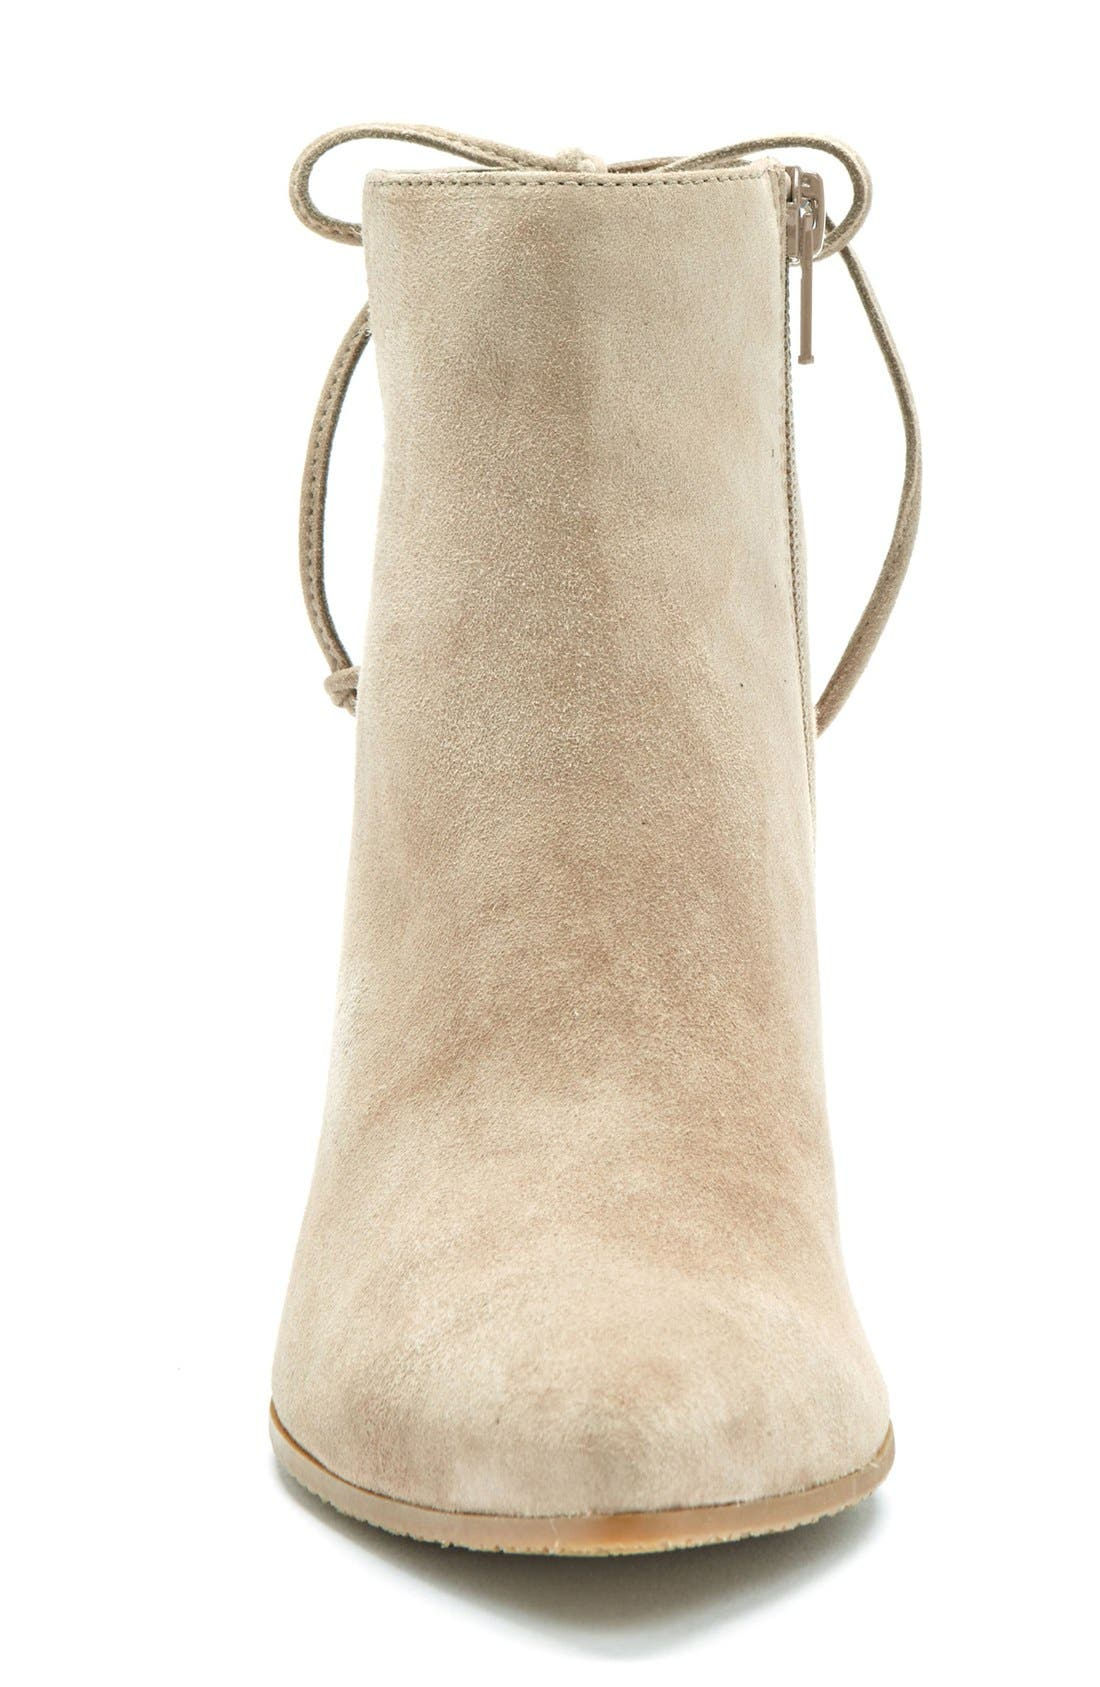 Tiana Waterproof Pointy Toe Bootie,                             Alternate thumbnail 3, color,                             Taupe Suede